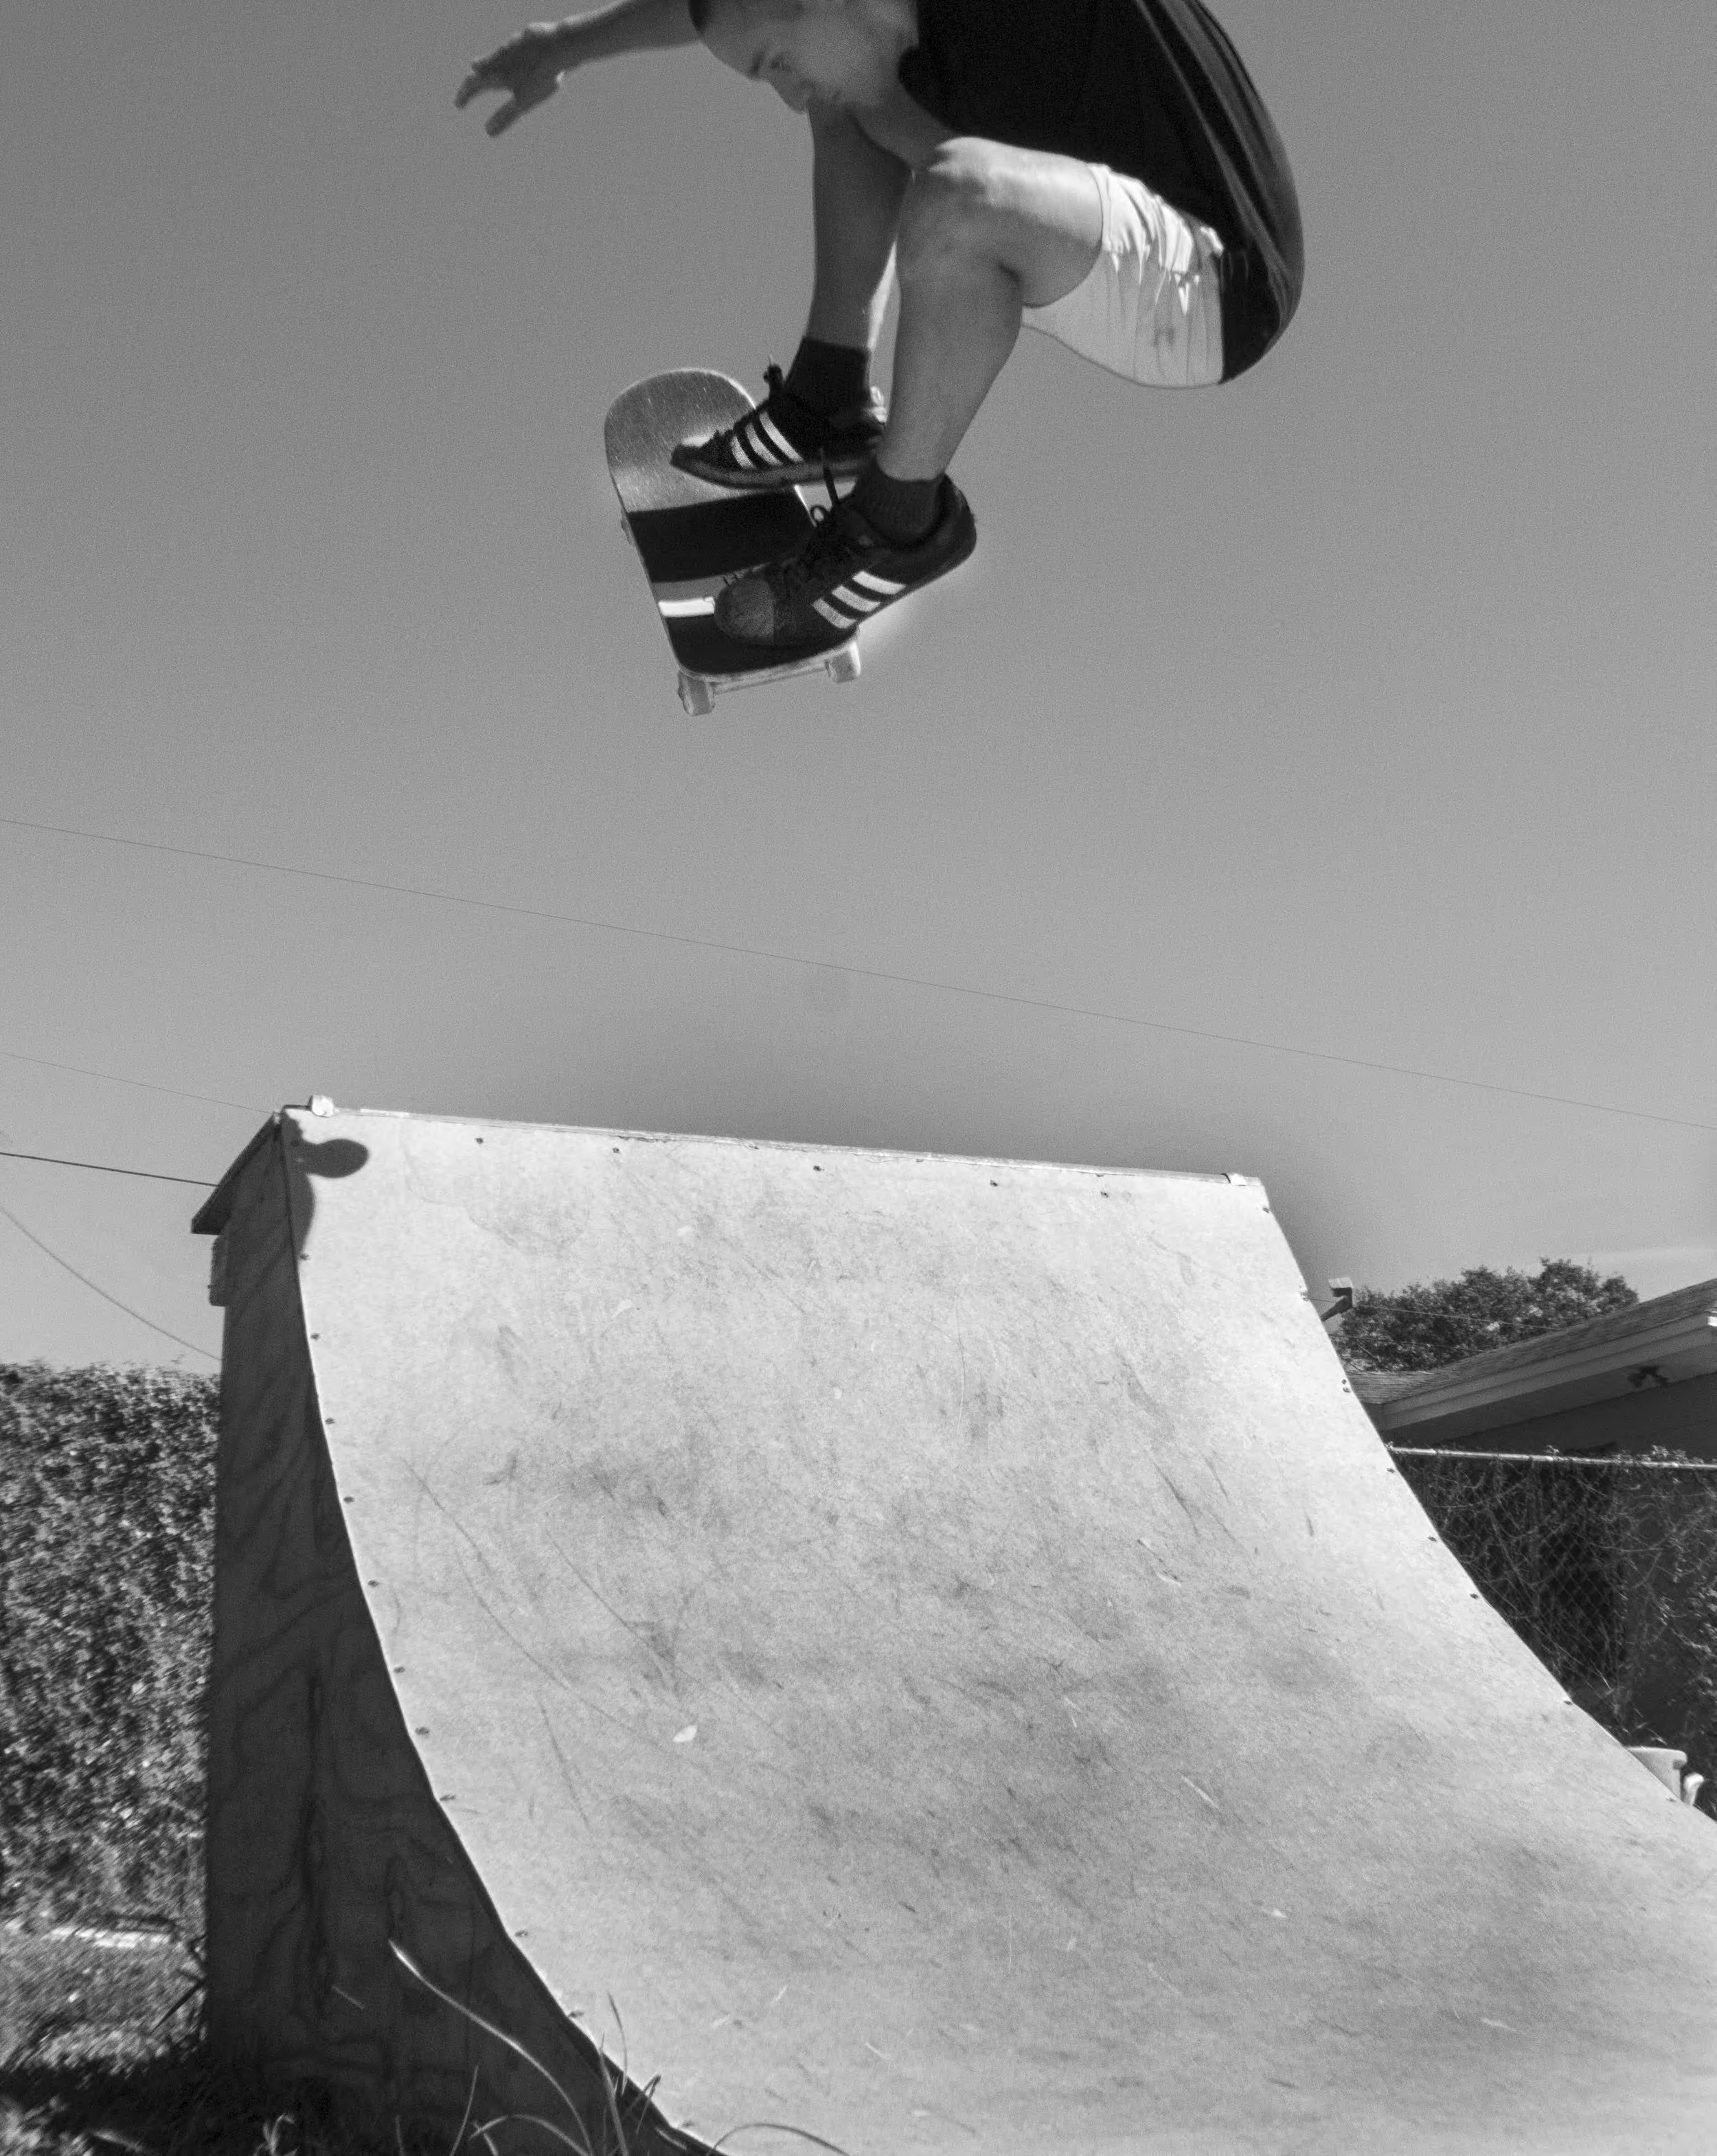 Skateboarder Airing Out